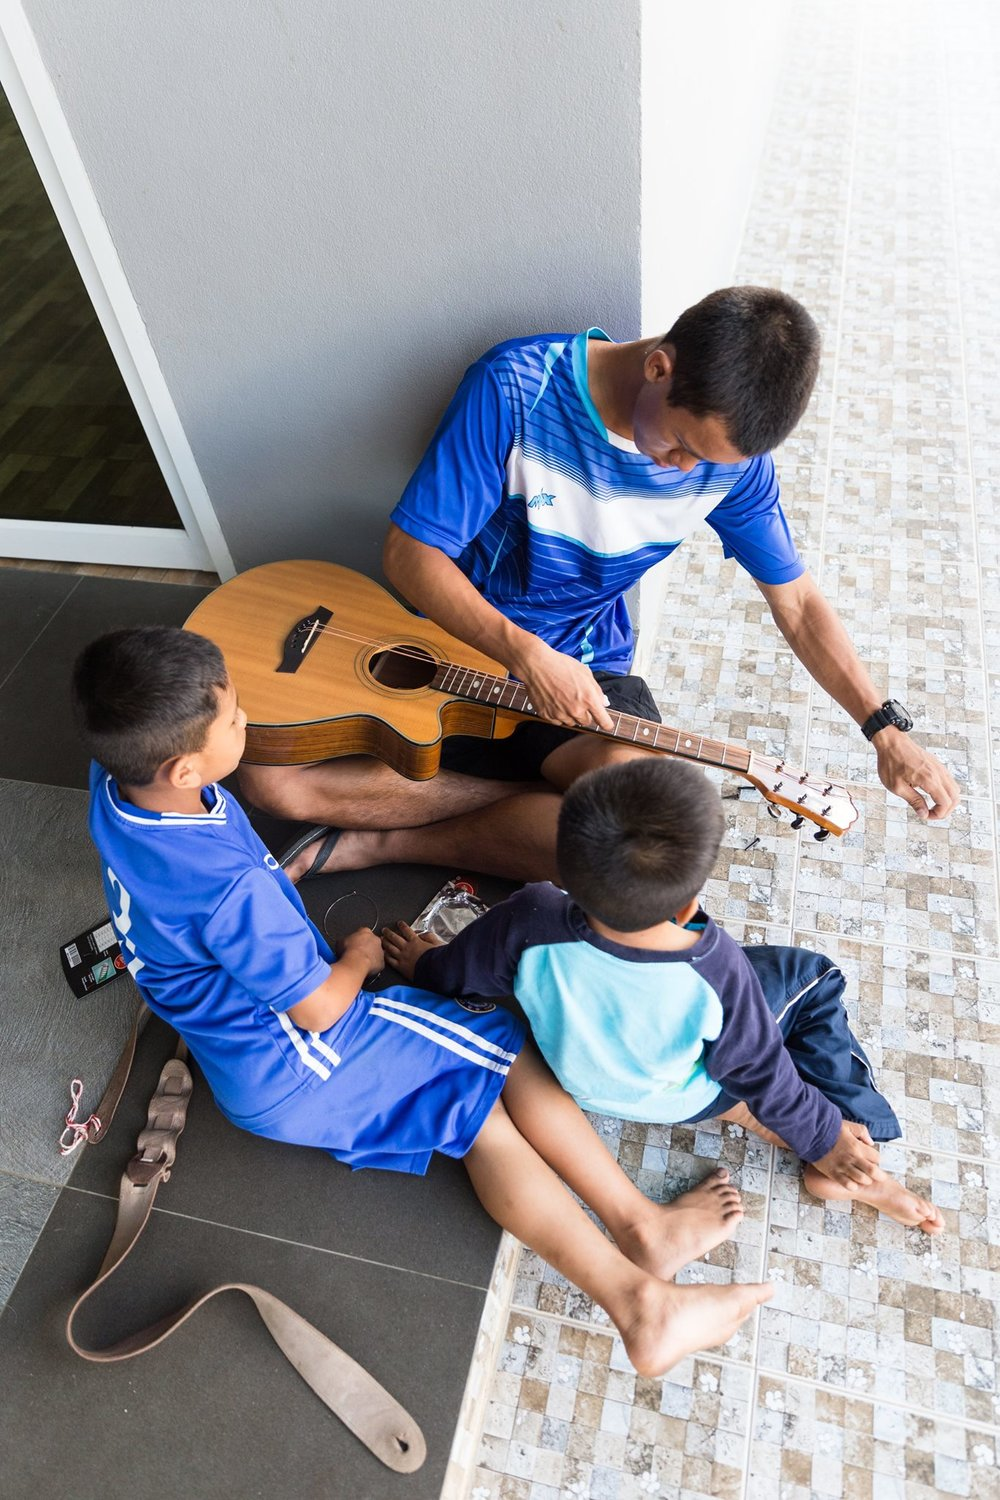 Younger kids watching Traipob work on the guitar